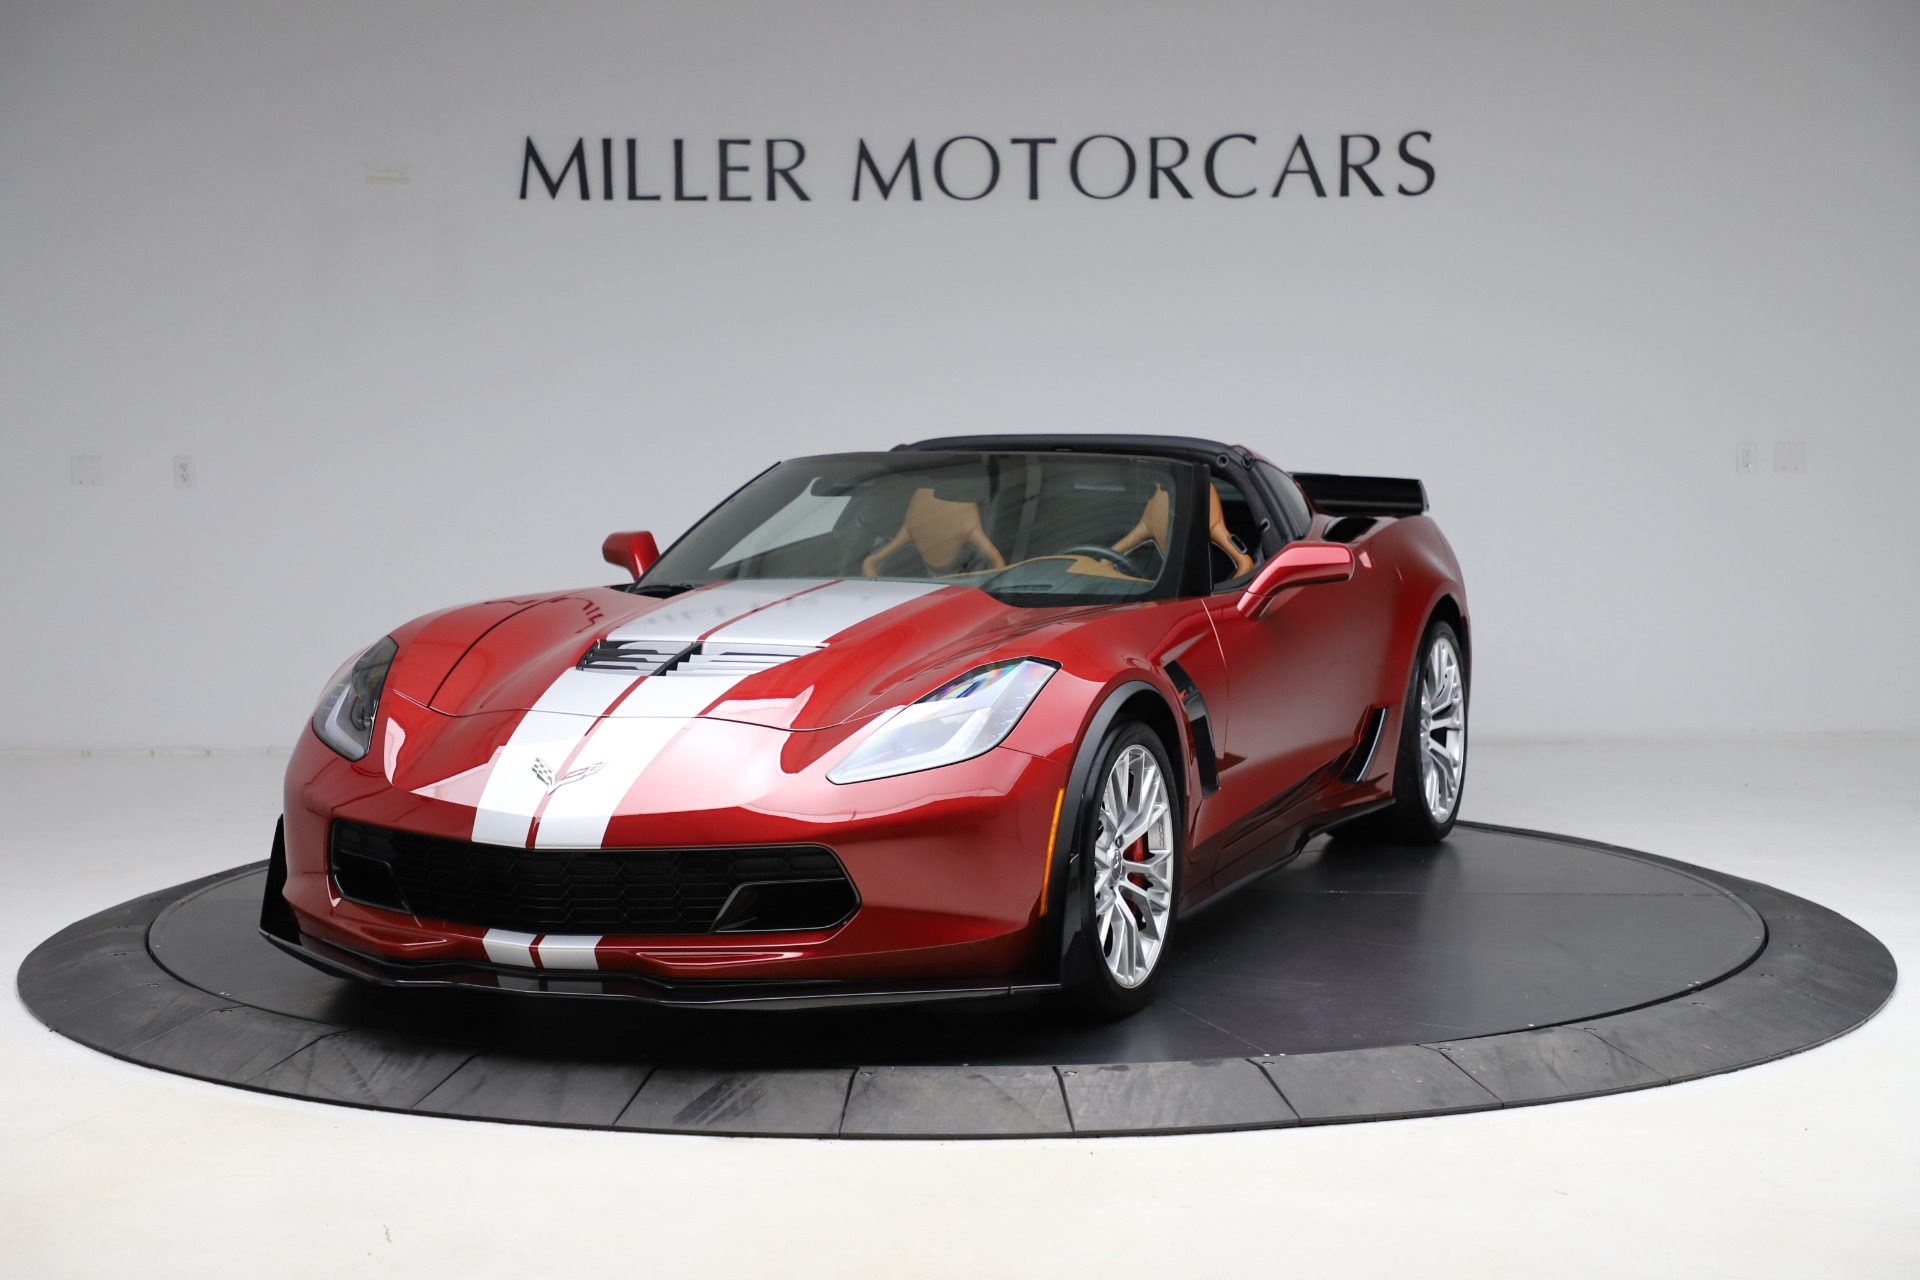 Used 2015 Chevrolet Corvette Z06 for sale $85,900 at Pagani of Greenwich in Greenwich CT 06830 1